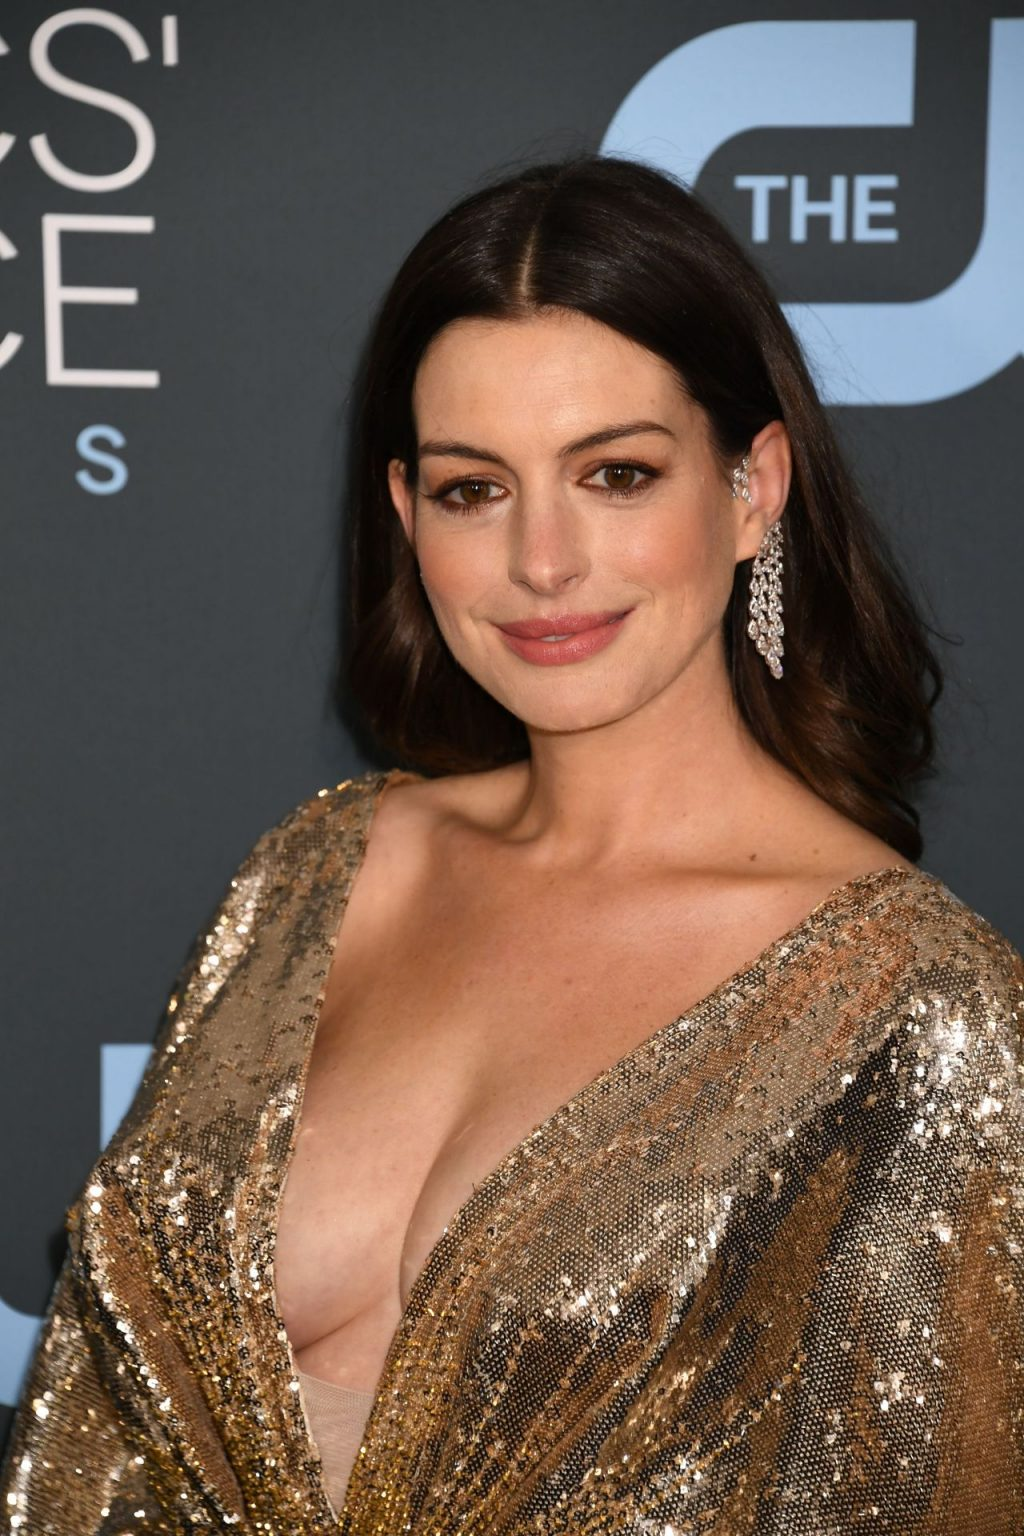 Anne Hathaway's Tits (75 Photos)